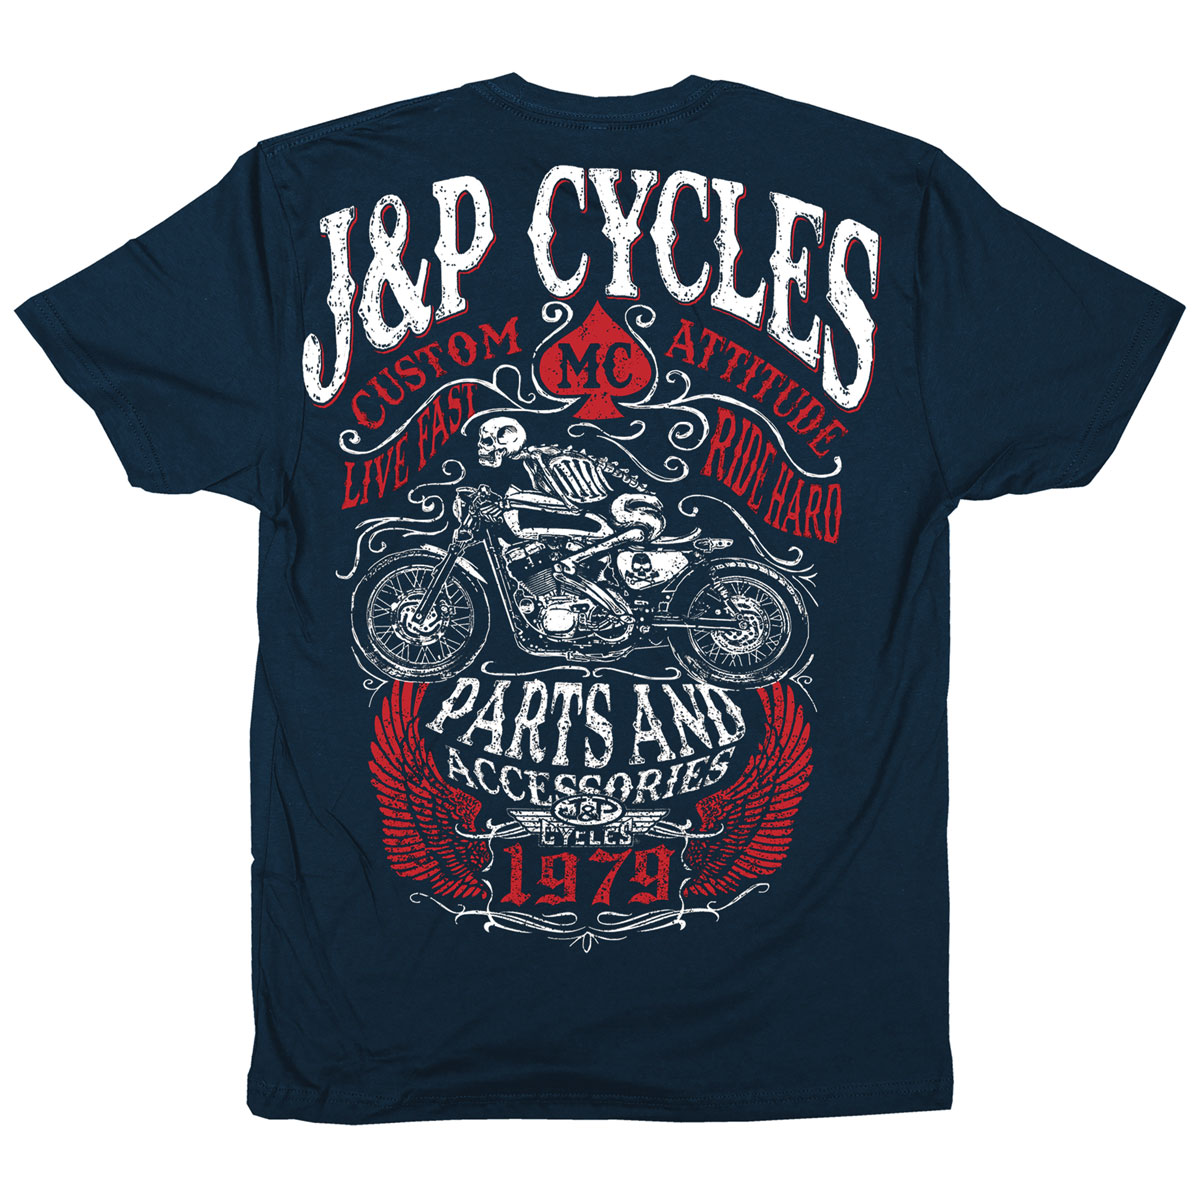 J&P Cycles Men's Death Rider Navy T-Shirt